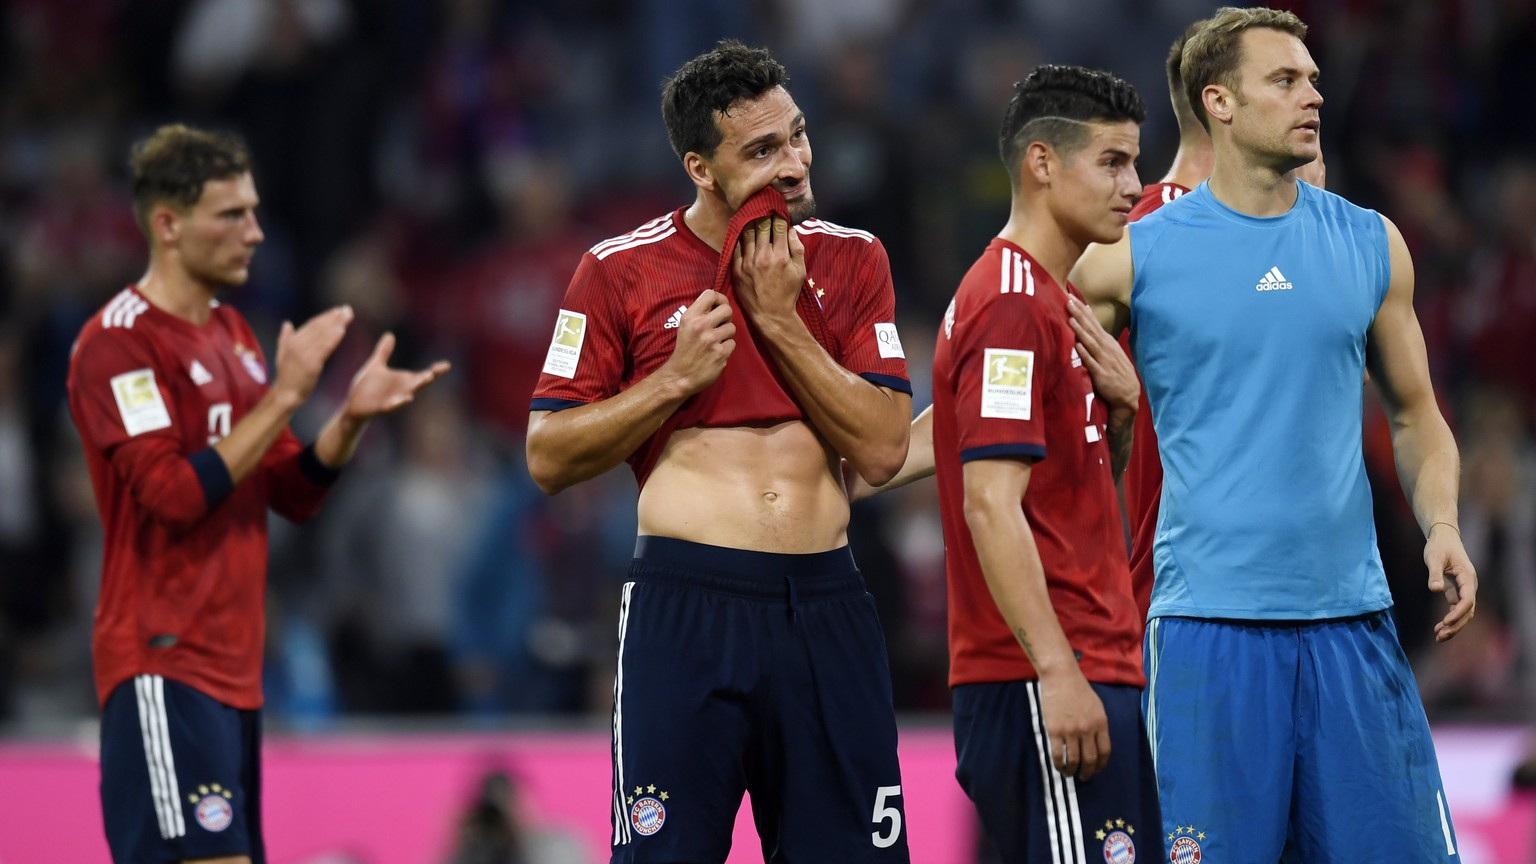 epa07074761 Bayern's Mats Hummels (C) and Manuel Neuer (R) react after the German Bundesliga soccer match between Bayern Munich and Borussia Moenchengladbach in Munich, Germany, 06 October 2018.  EPA/DANIEL KOPATSCH CONDITIONS - ATTENTION: The DFL regulations prohibit any use of photographs as image sequences and/or quasi-video.